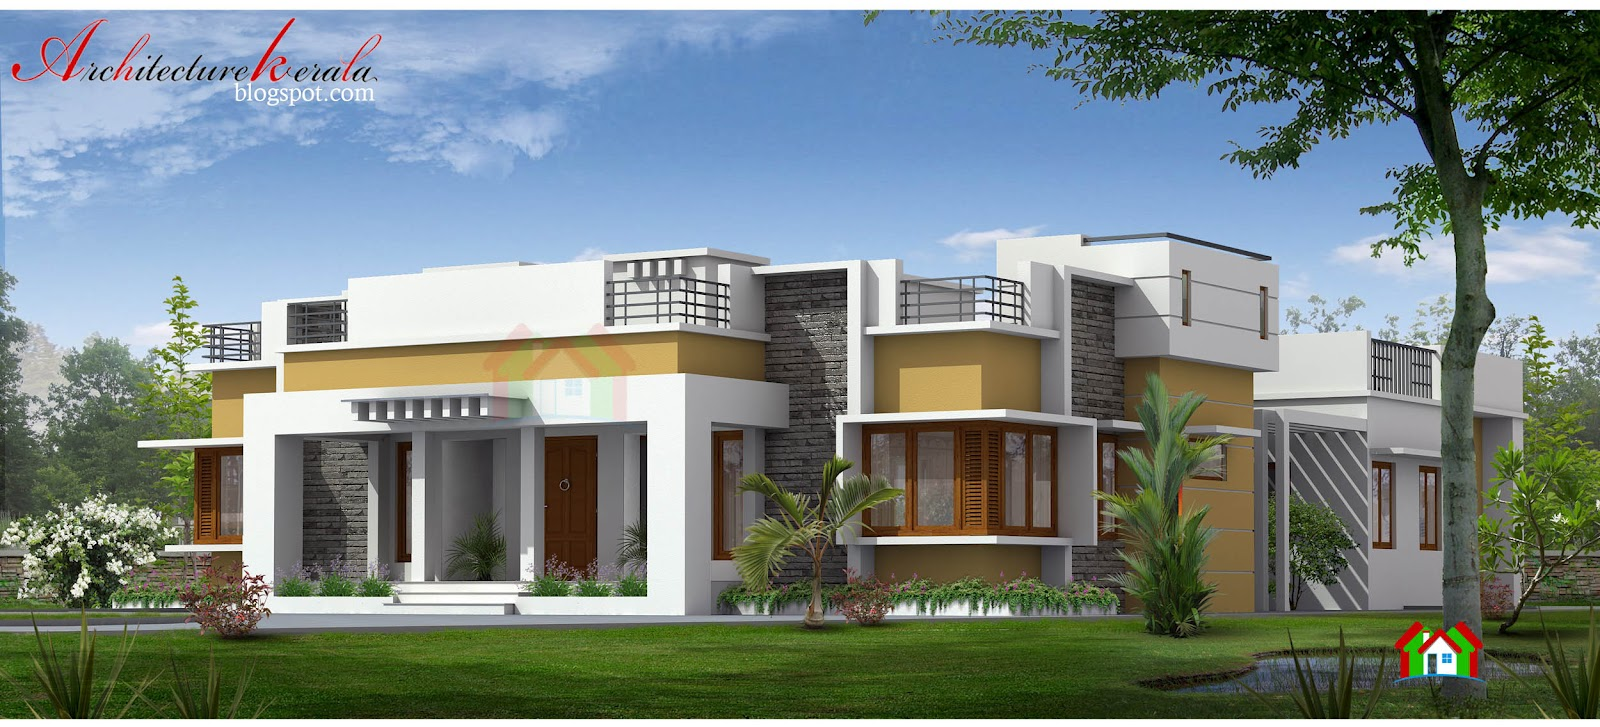 Architecture kerala 5 bedroom big kerala house elevation for Kerala building elevation